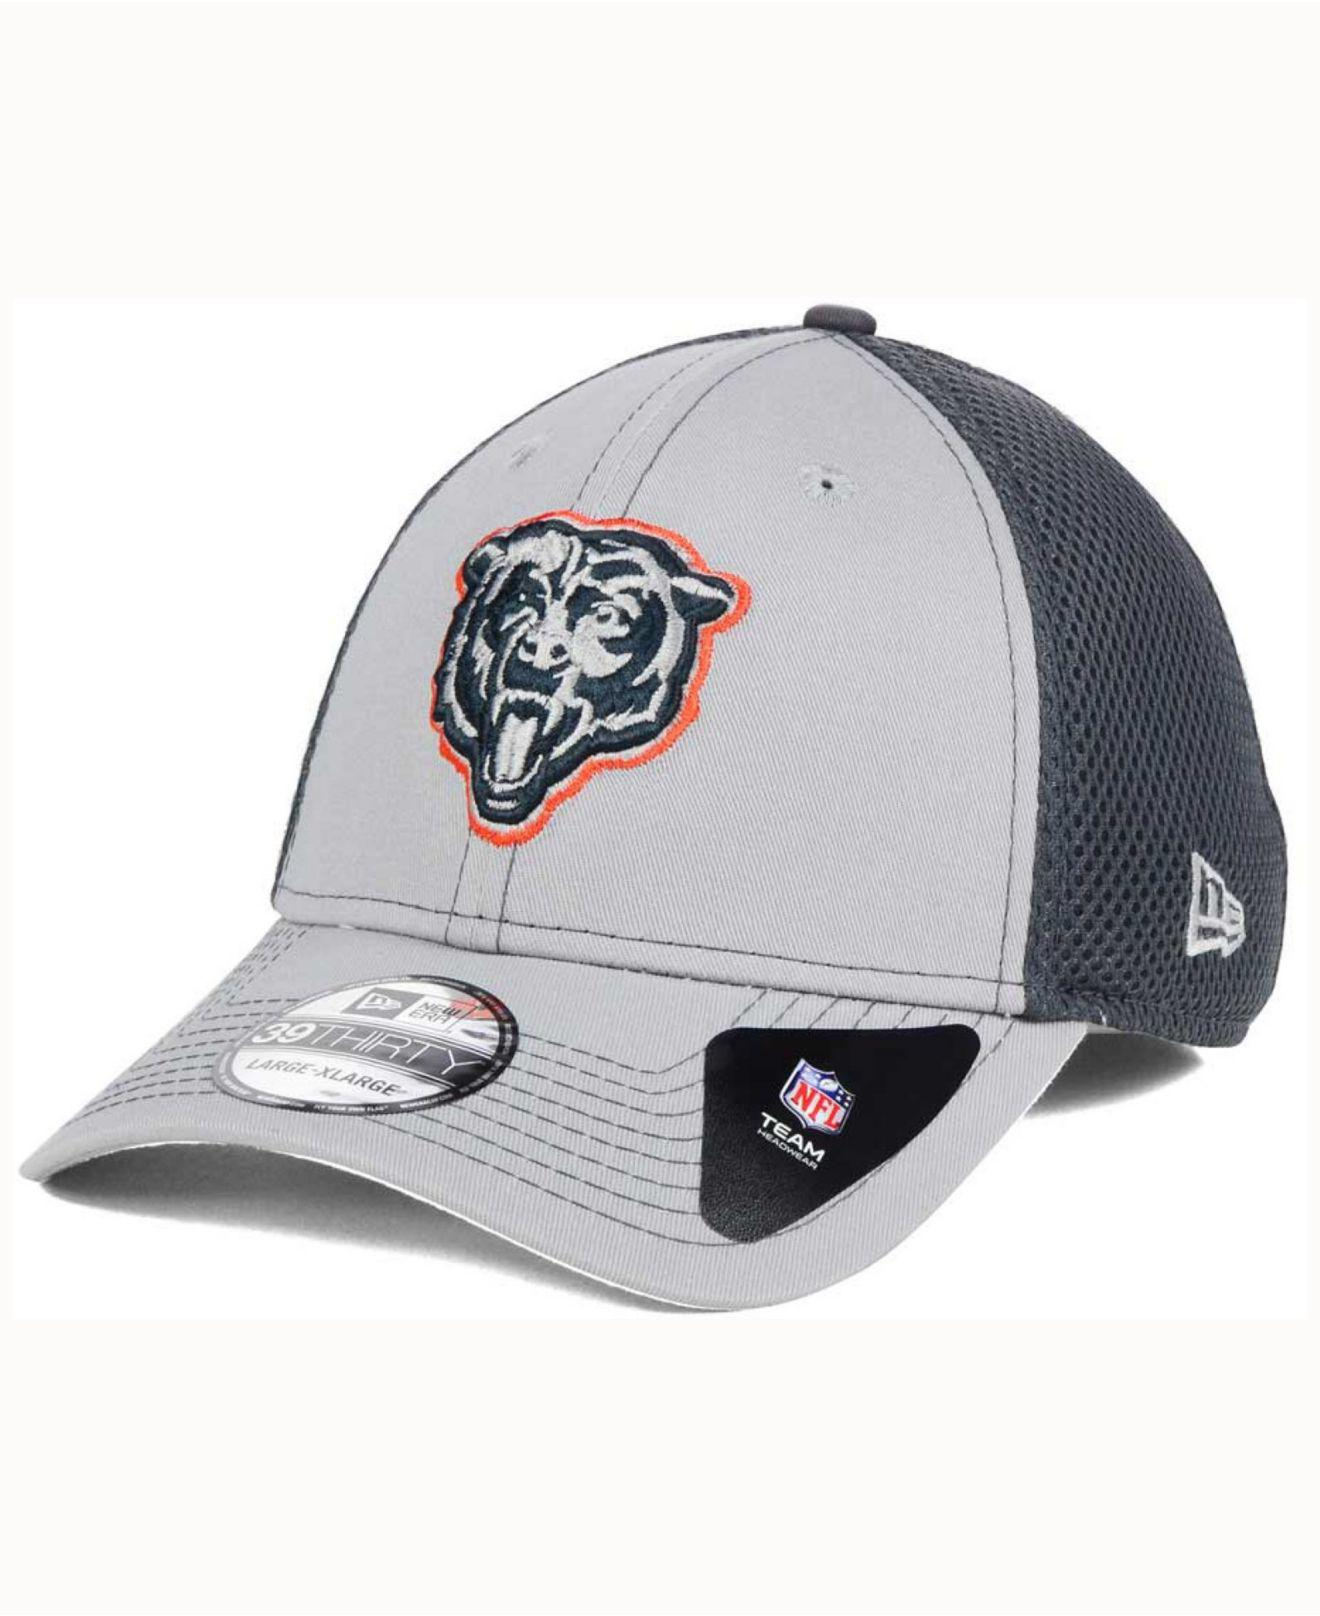 5630792eb29 KTZ - Chicago Bears Grayed Out Neo 39thirty Cap for Men - Lyst. View  fullscreen